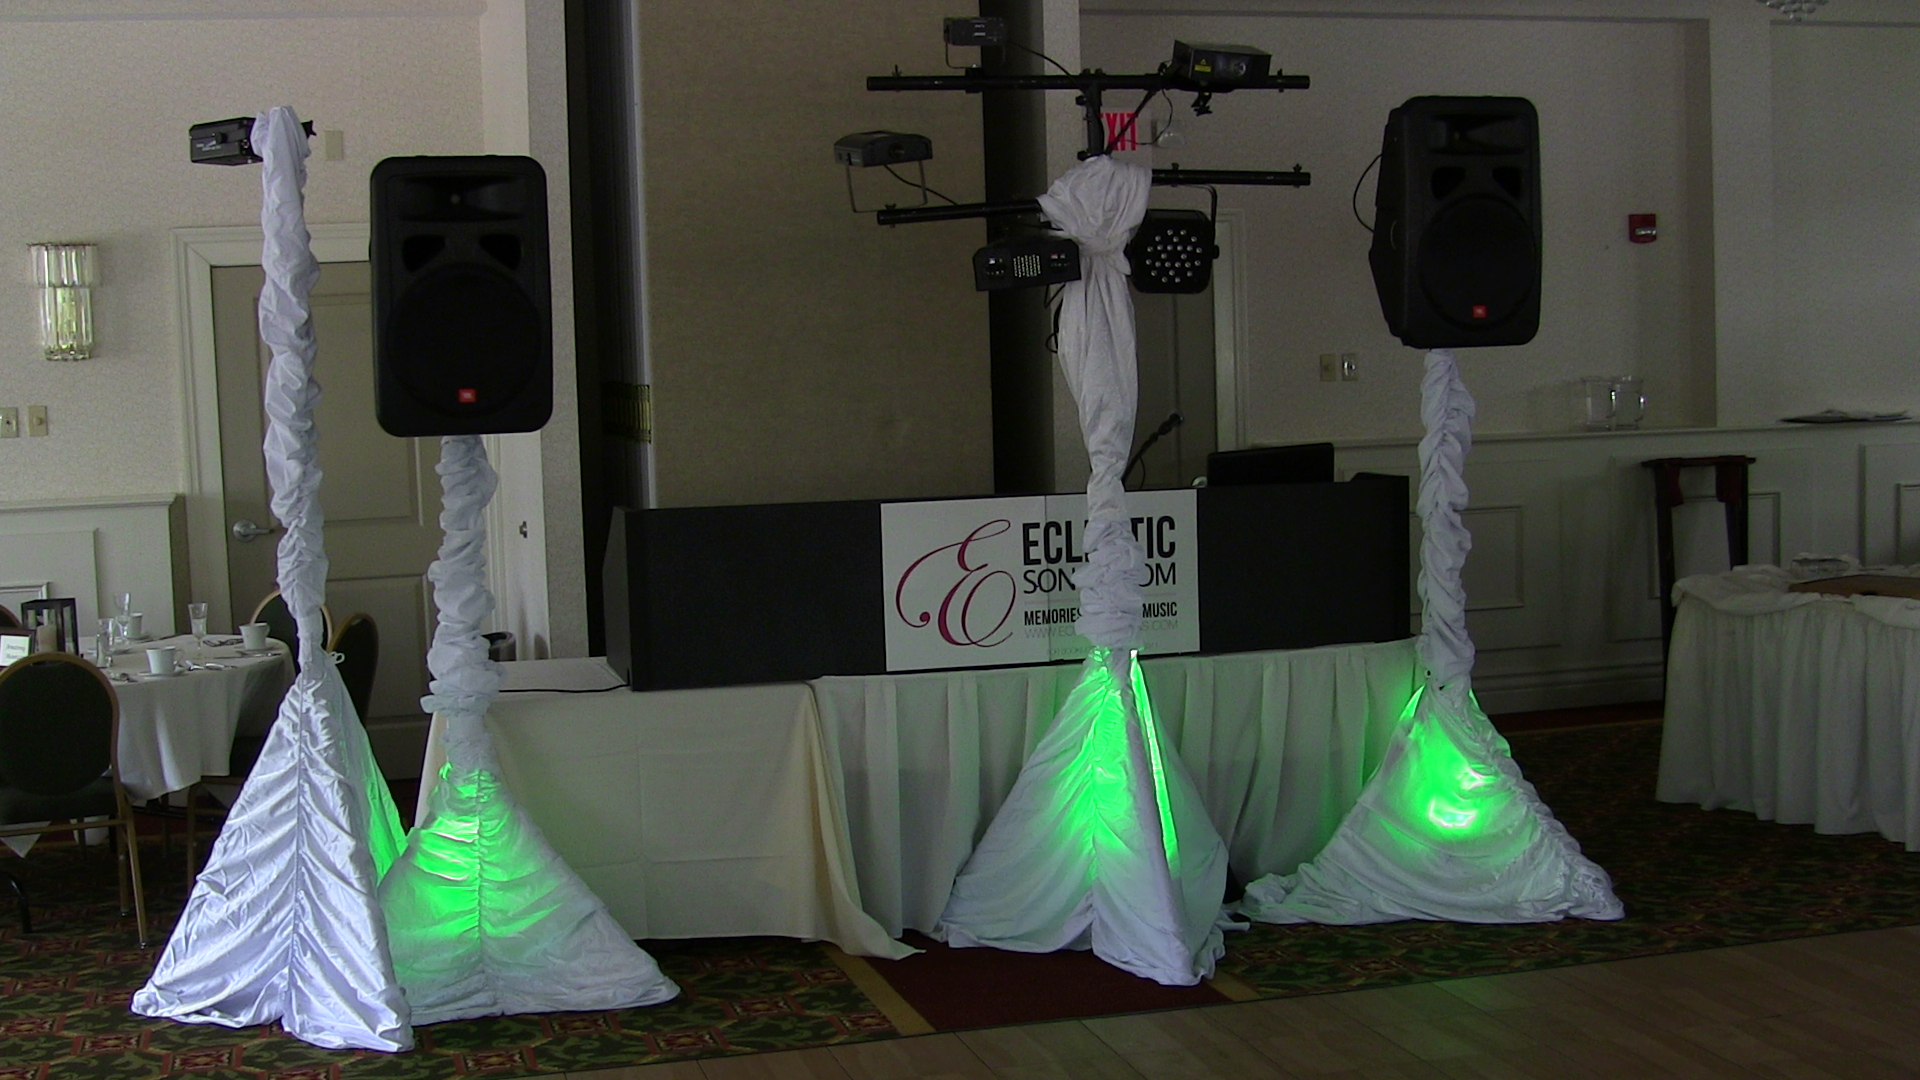 Another Lighting Setup used at Eclectic Songs